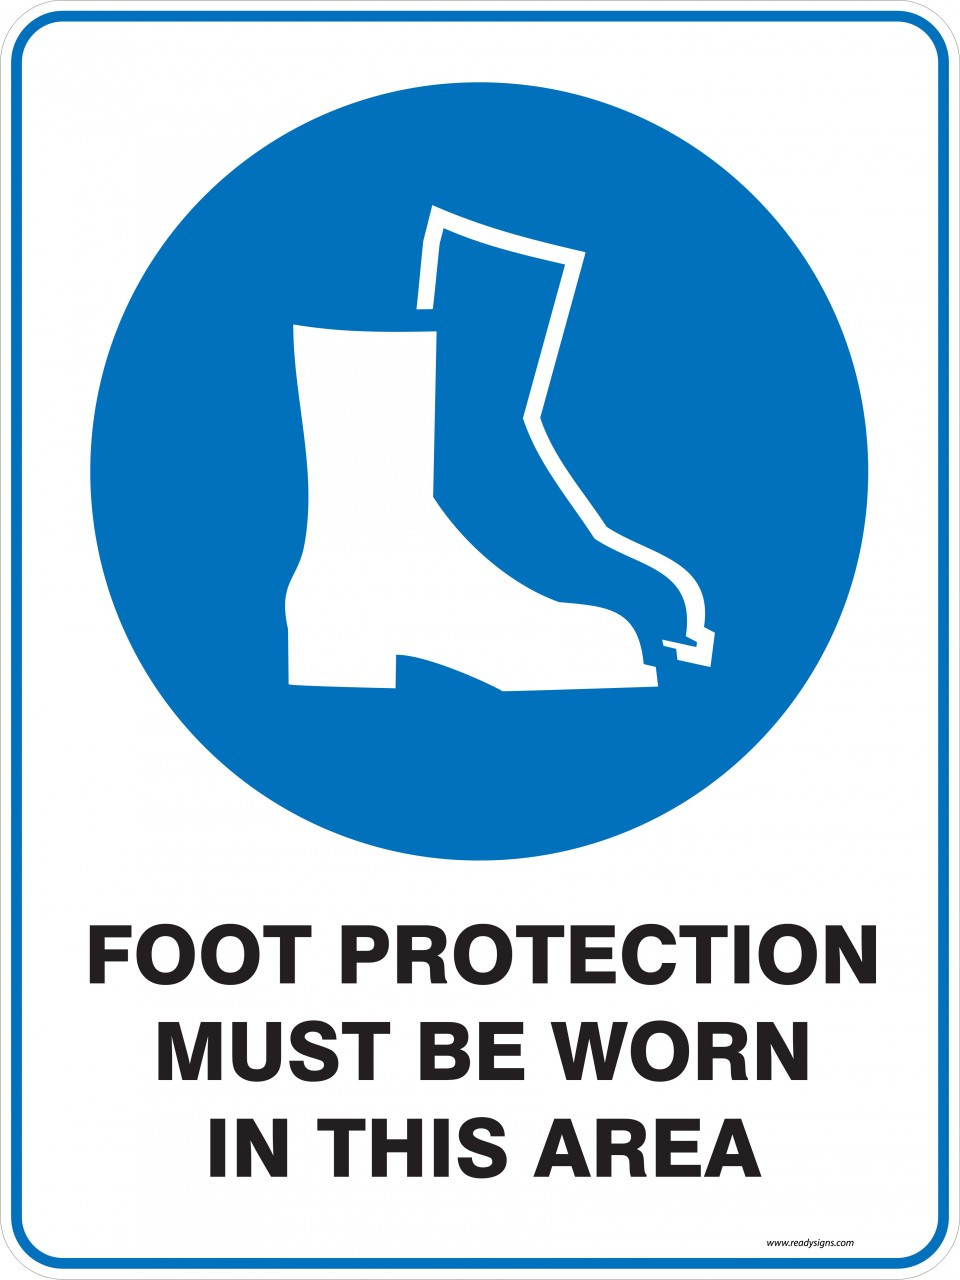 Mandatory Sign  Foot Protection Must Be Worn In This Area. Deep Depression Signs. Plywood Frame Signs. Led Light Signs. Squiggly Signs Of Stroke. Pub Scottish Signs. Line Leader Signs Of Stroke. 24th December Signs. Cow Signs Of Stroke